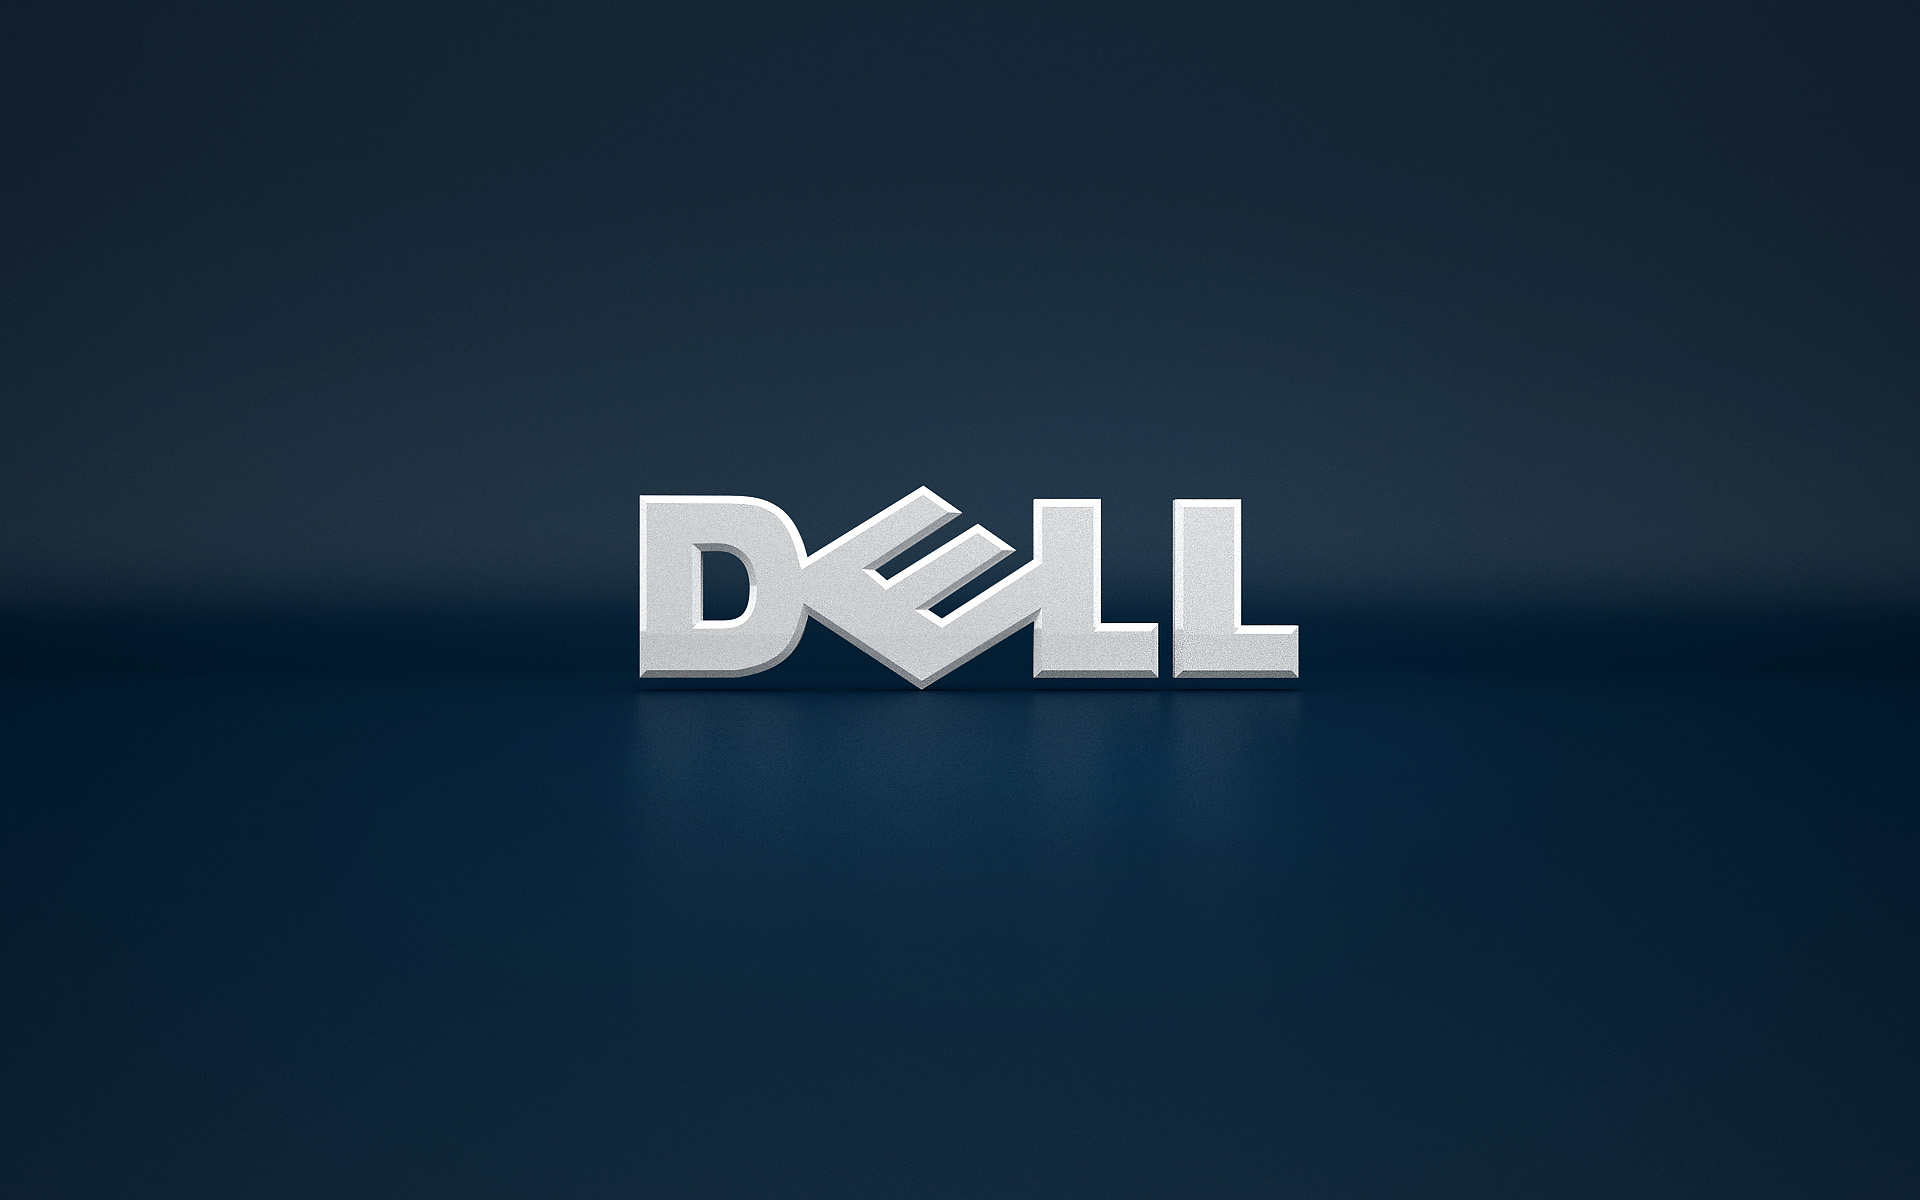 15 Top Quality Dell Wallpapers 1920x1200